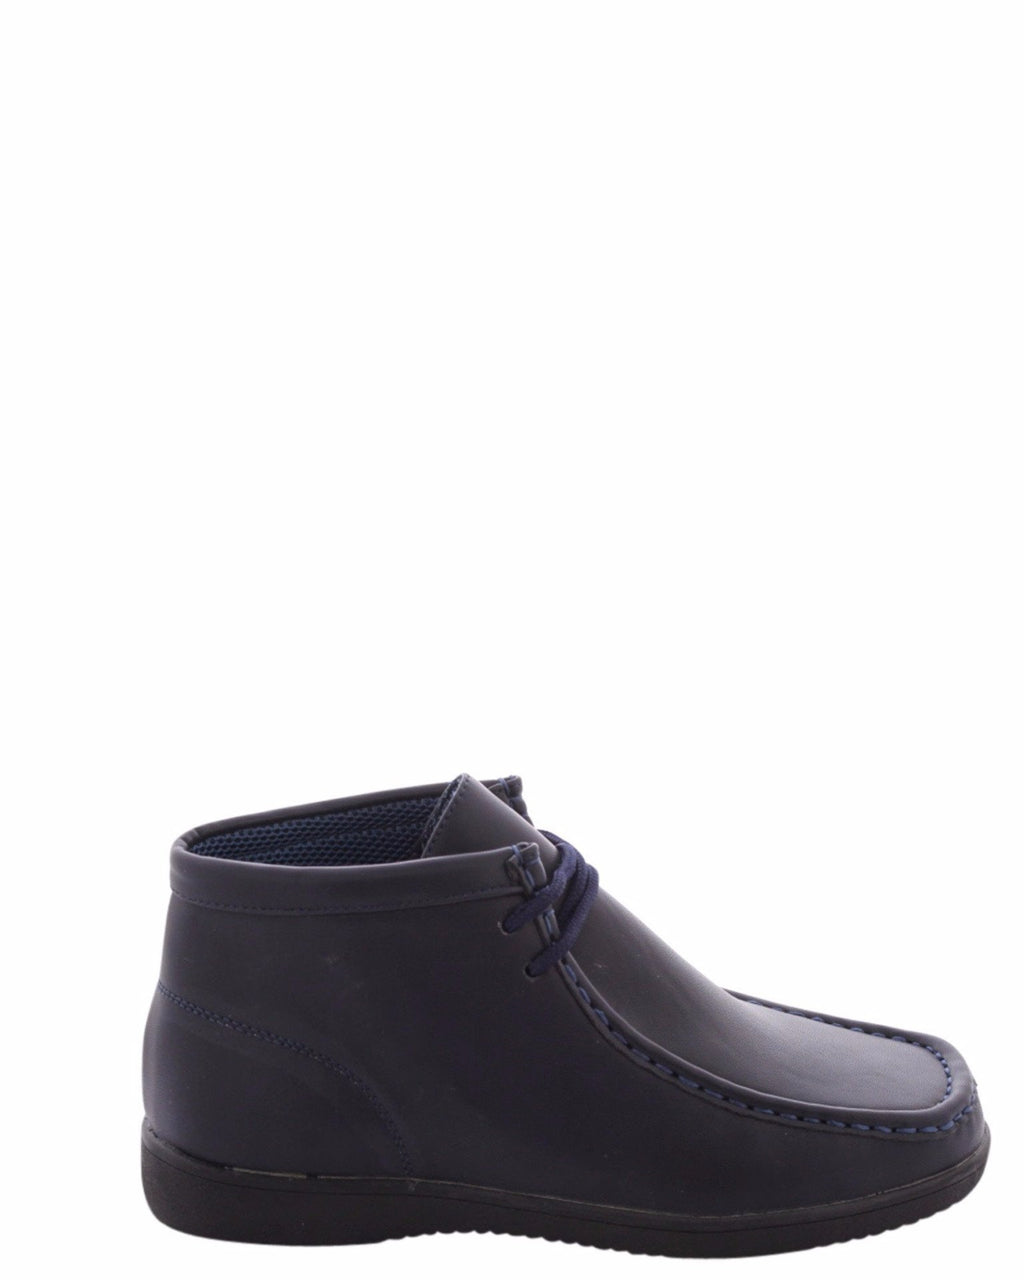 Boy's Wallabee Chukka Boots (Grade School)